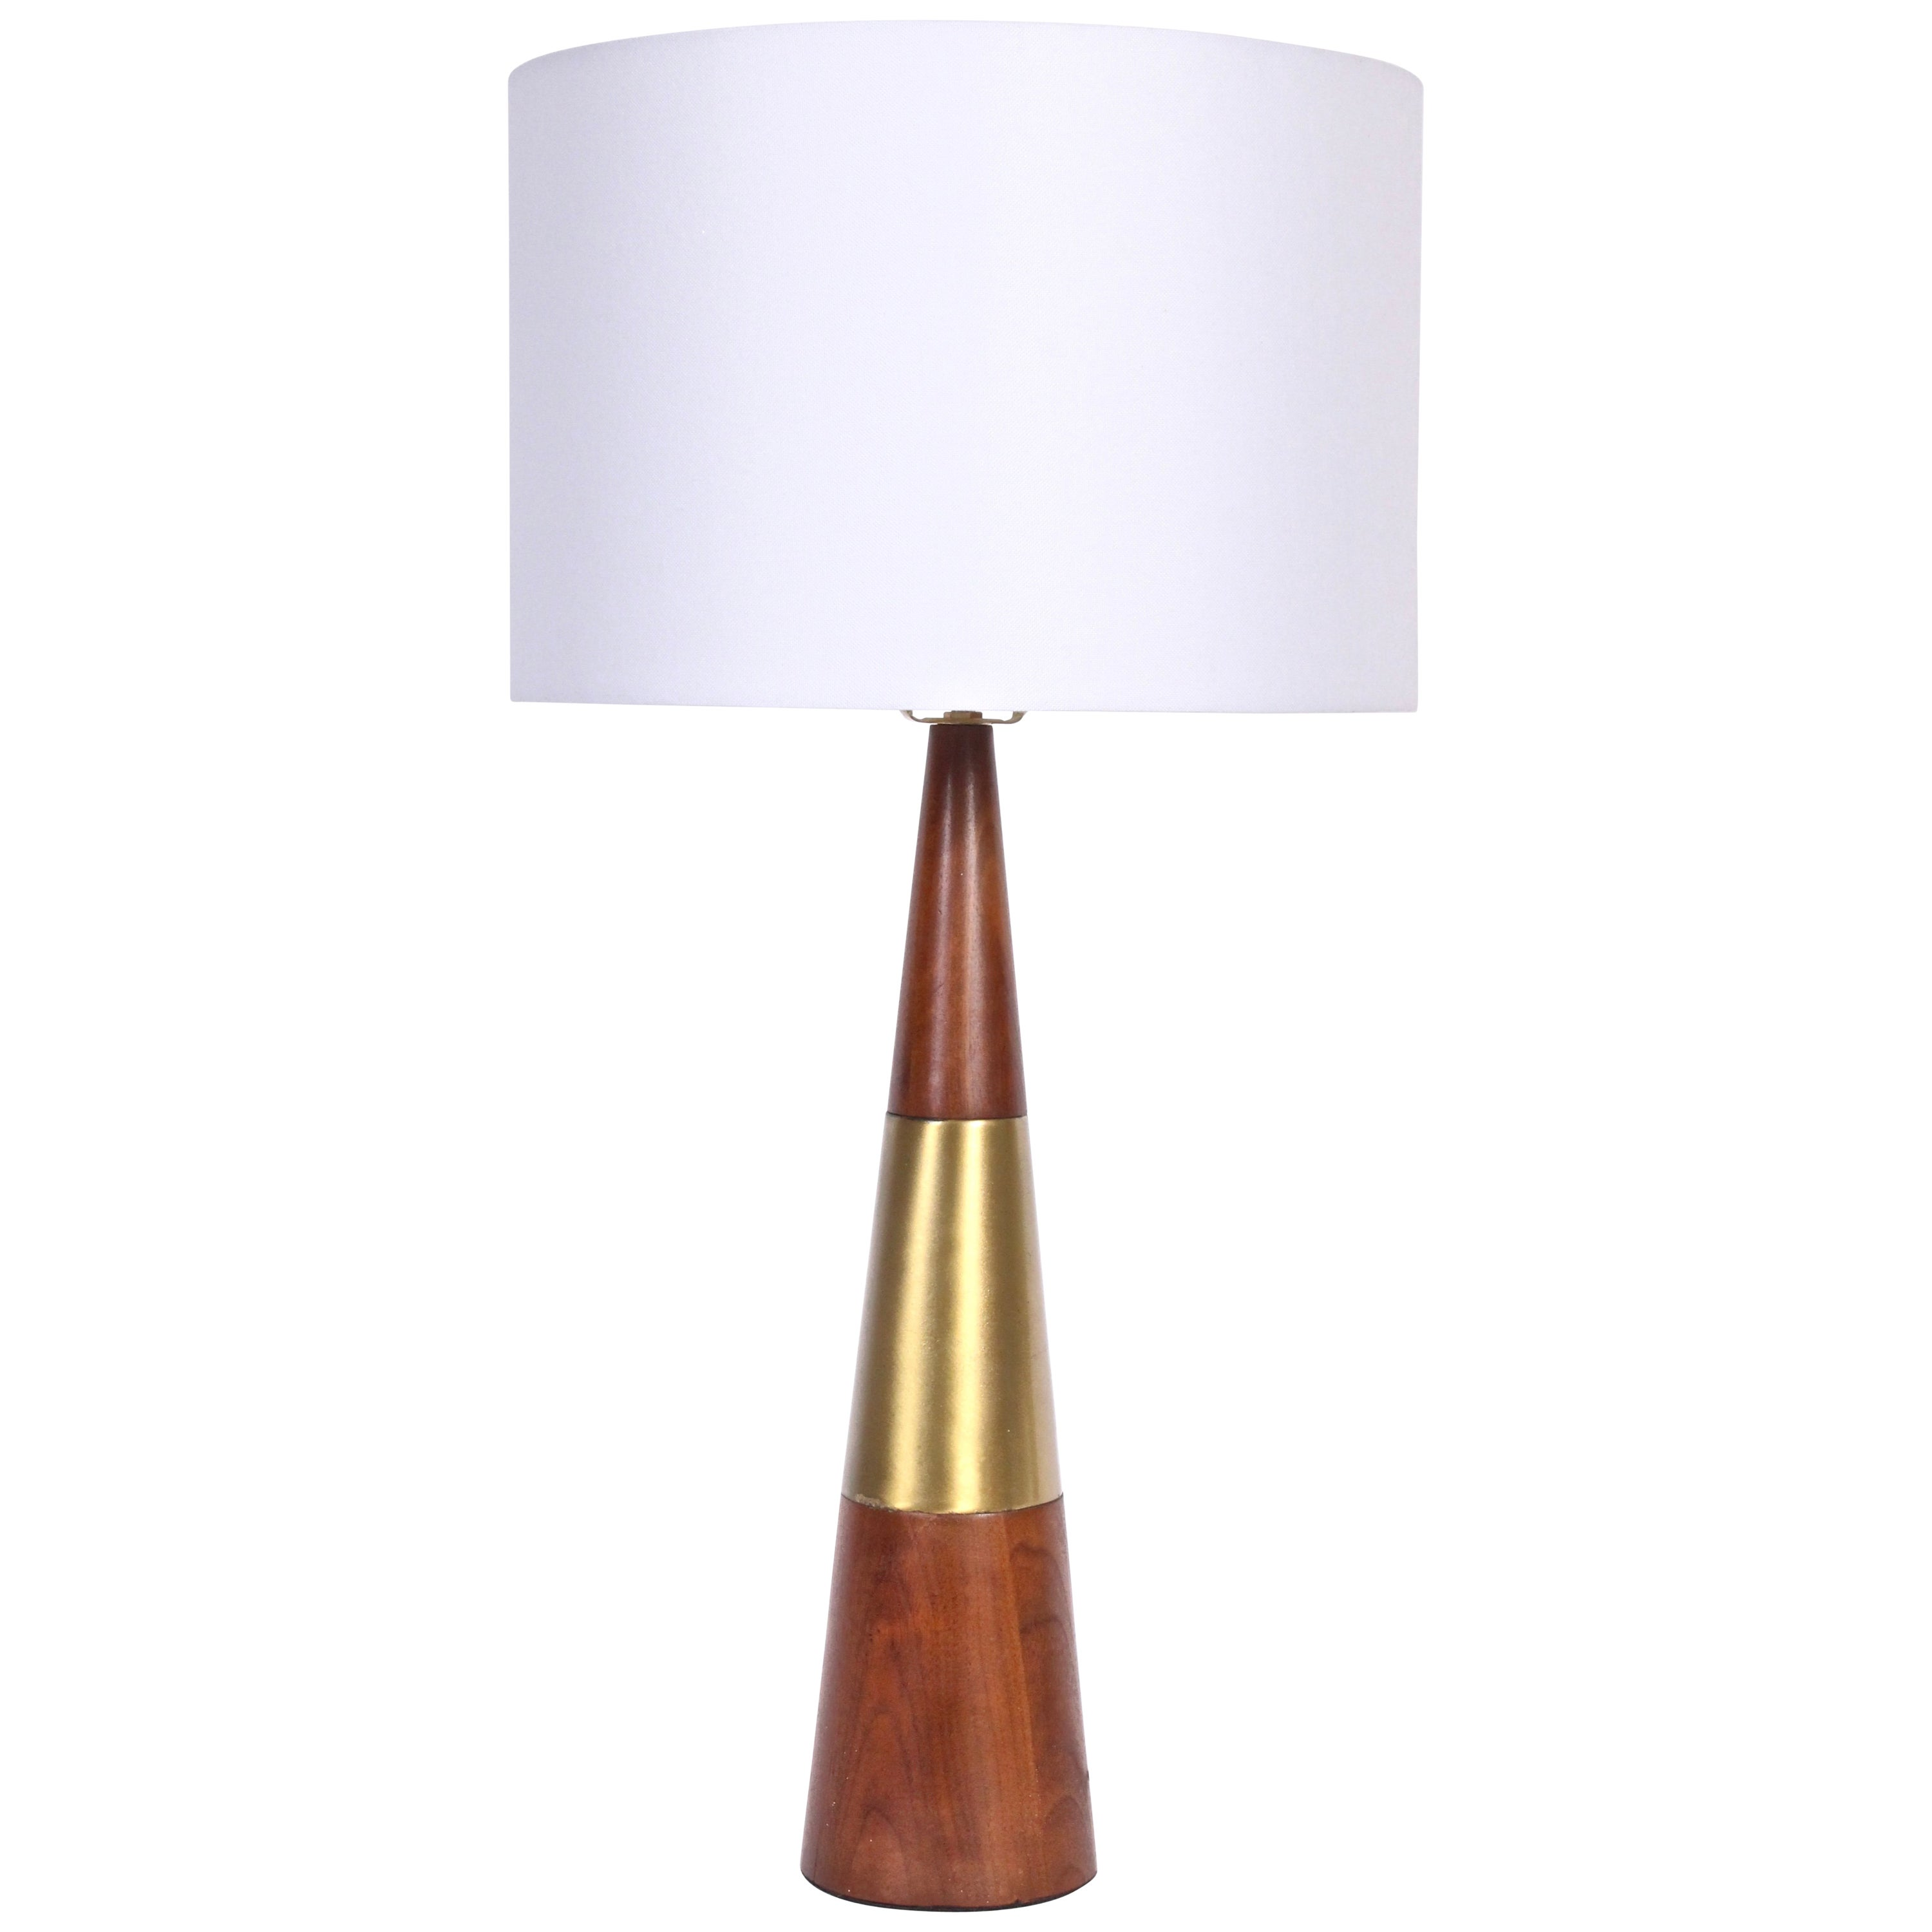 Tall Tony Paul for Westwood Swedish Brass & Solid Walnut Table Lamp, 1950s